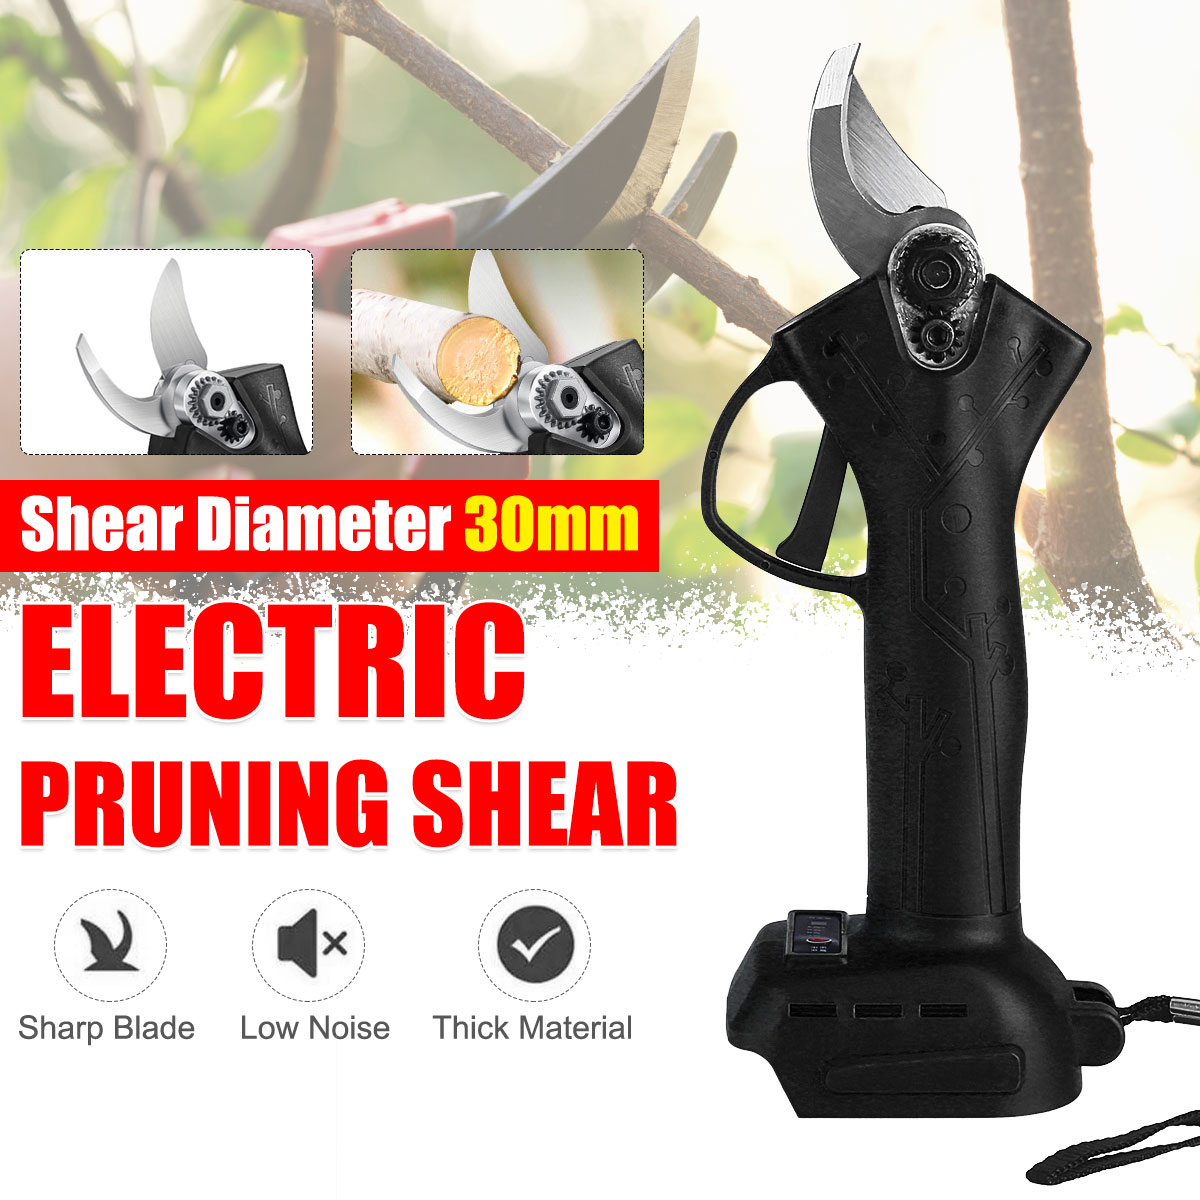 Professional Cordless Electric Pruner Pruning Shear Efficient Cutter  Fruit Tree Branch Pruner Shears for Makita Battery 30mm